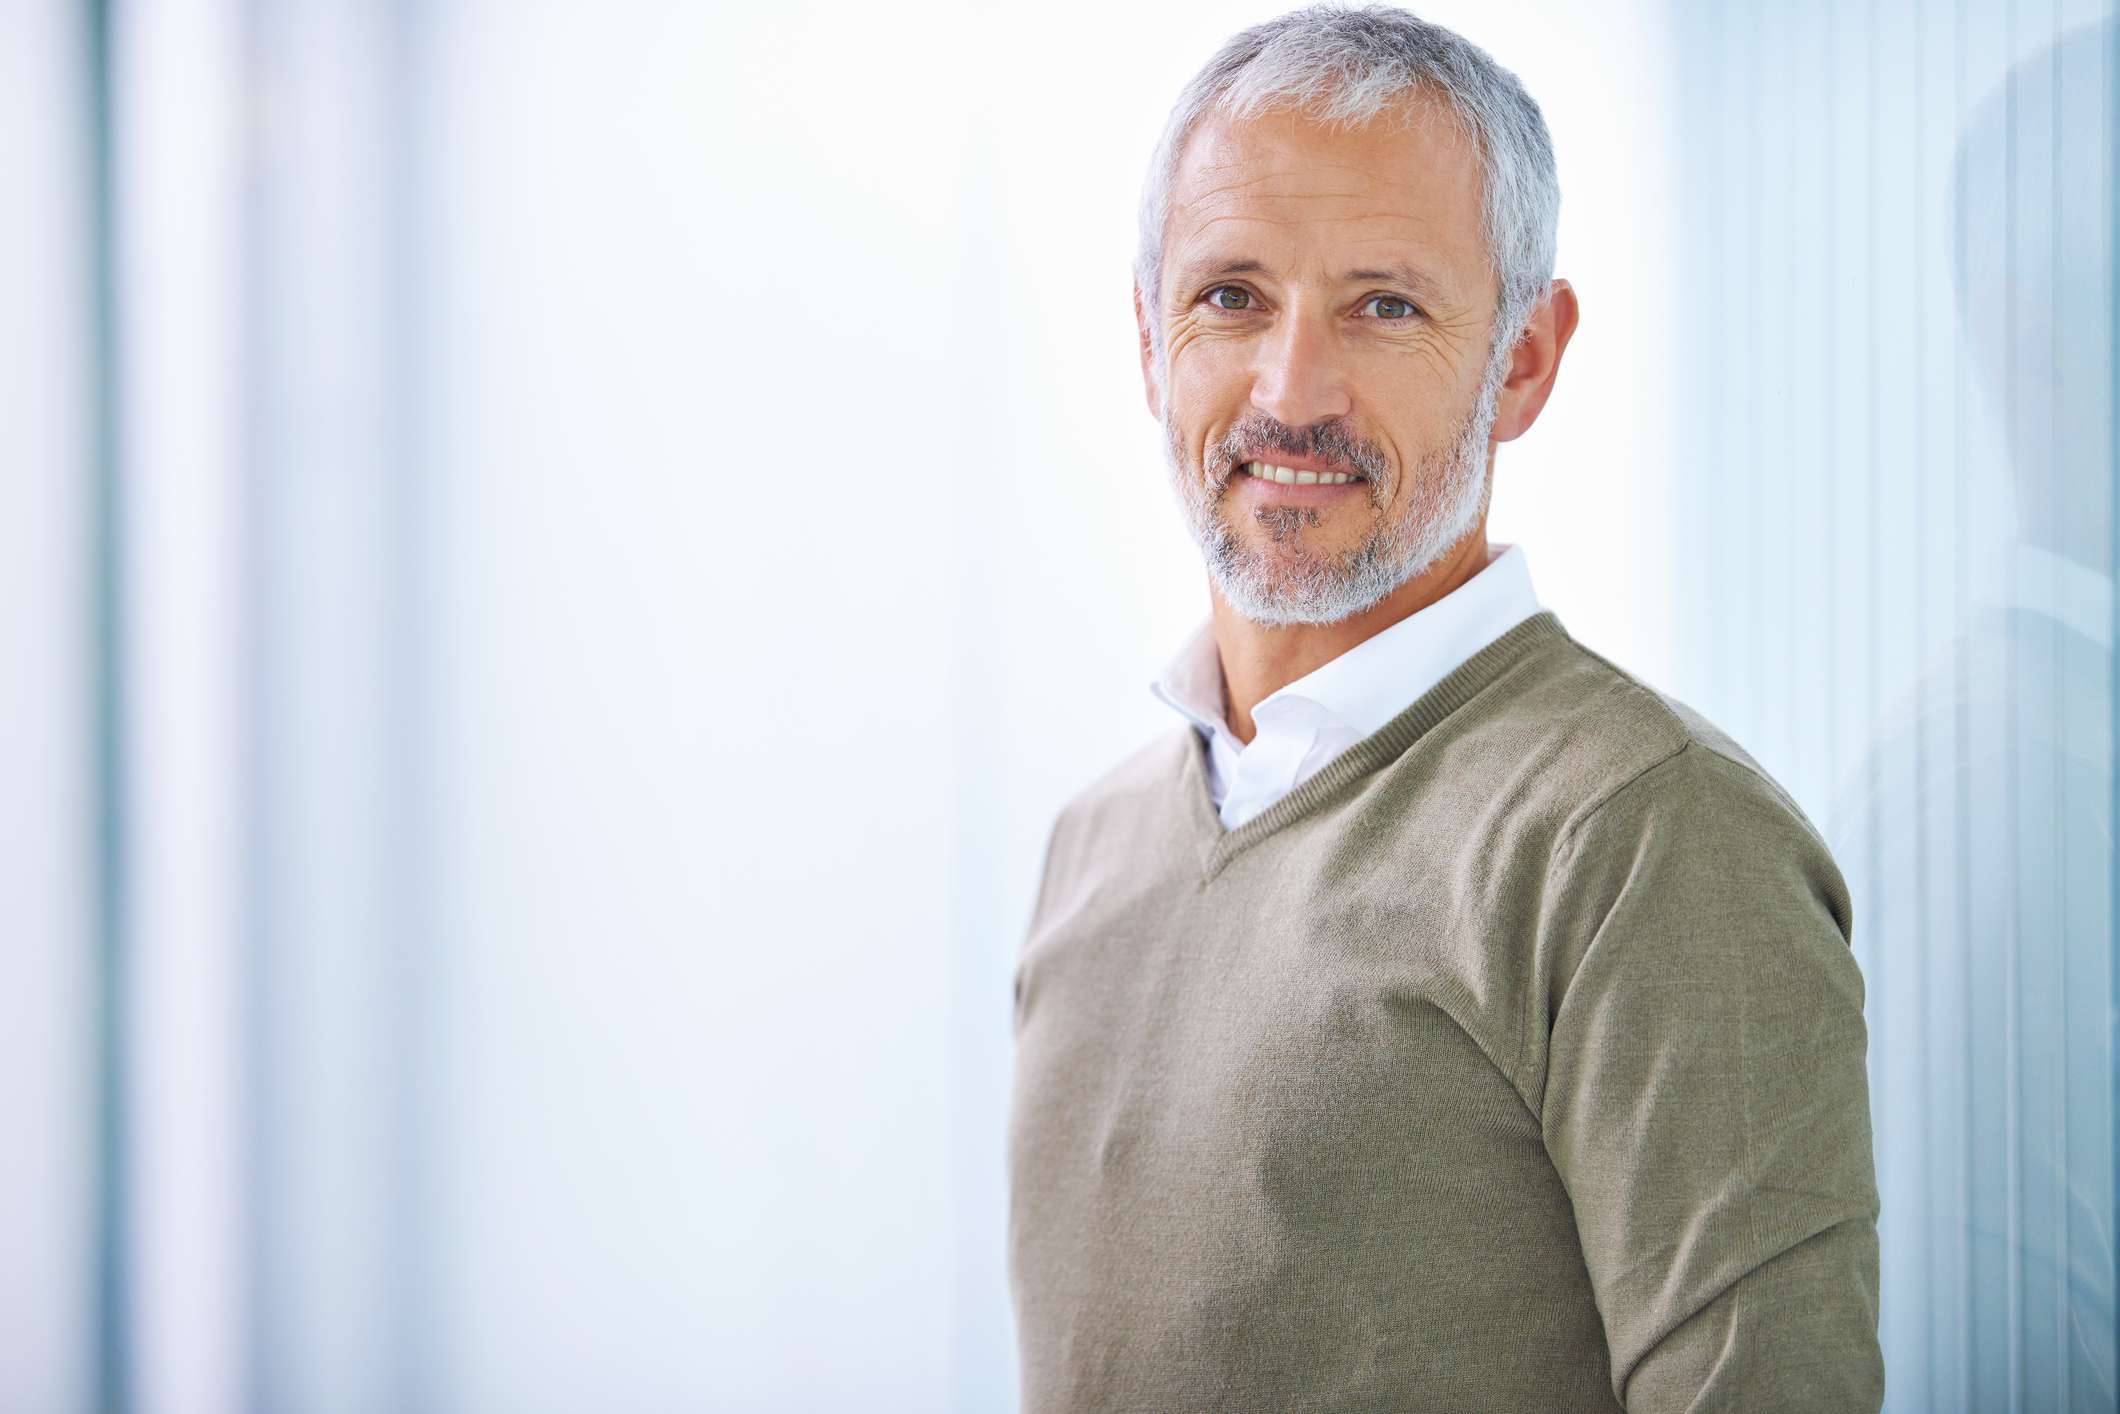 Man in button-down shirt and sweater